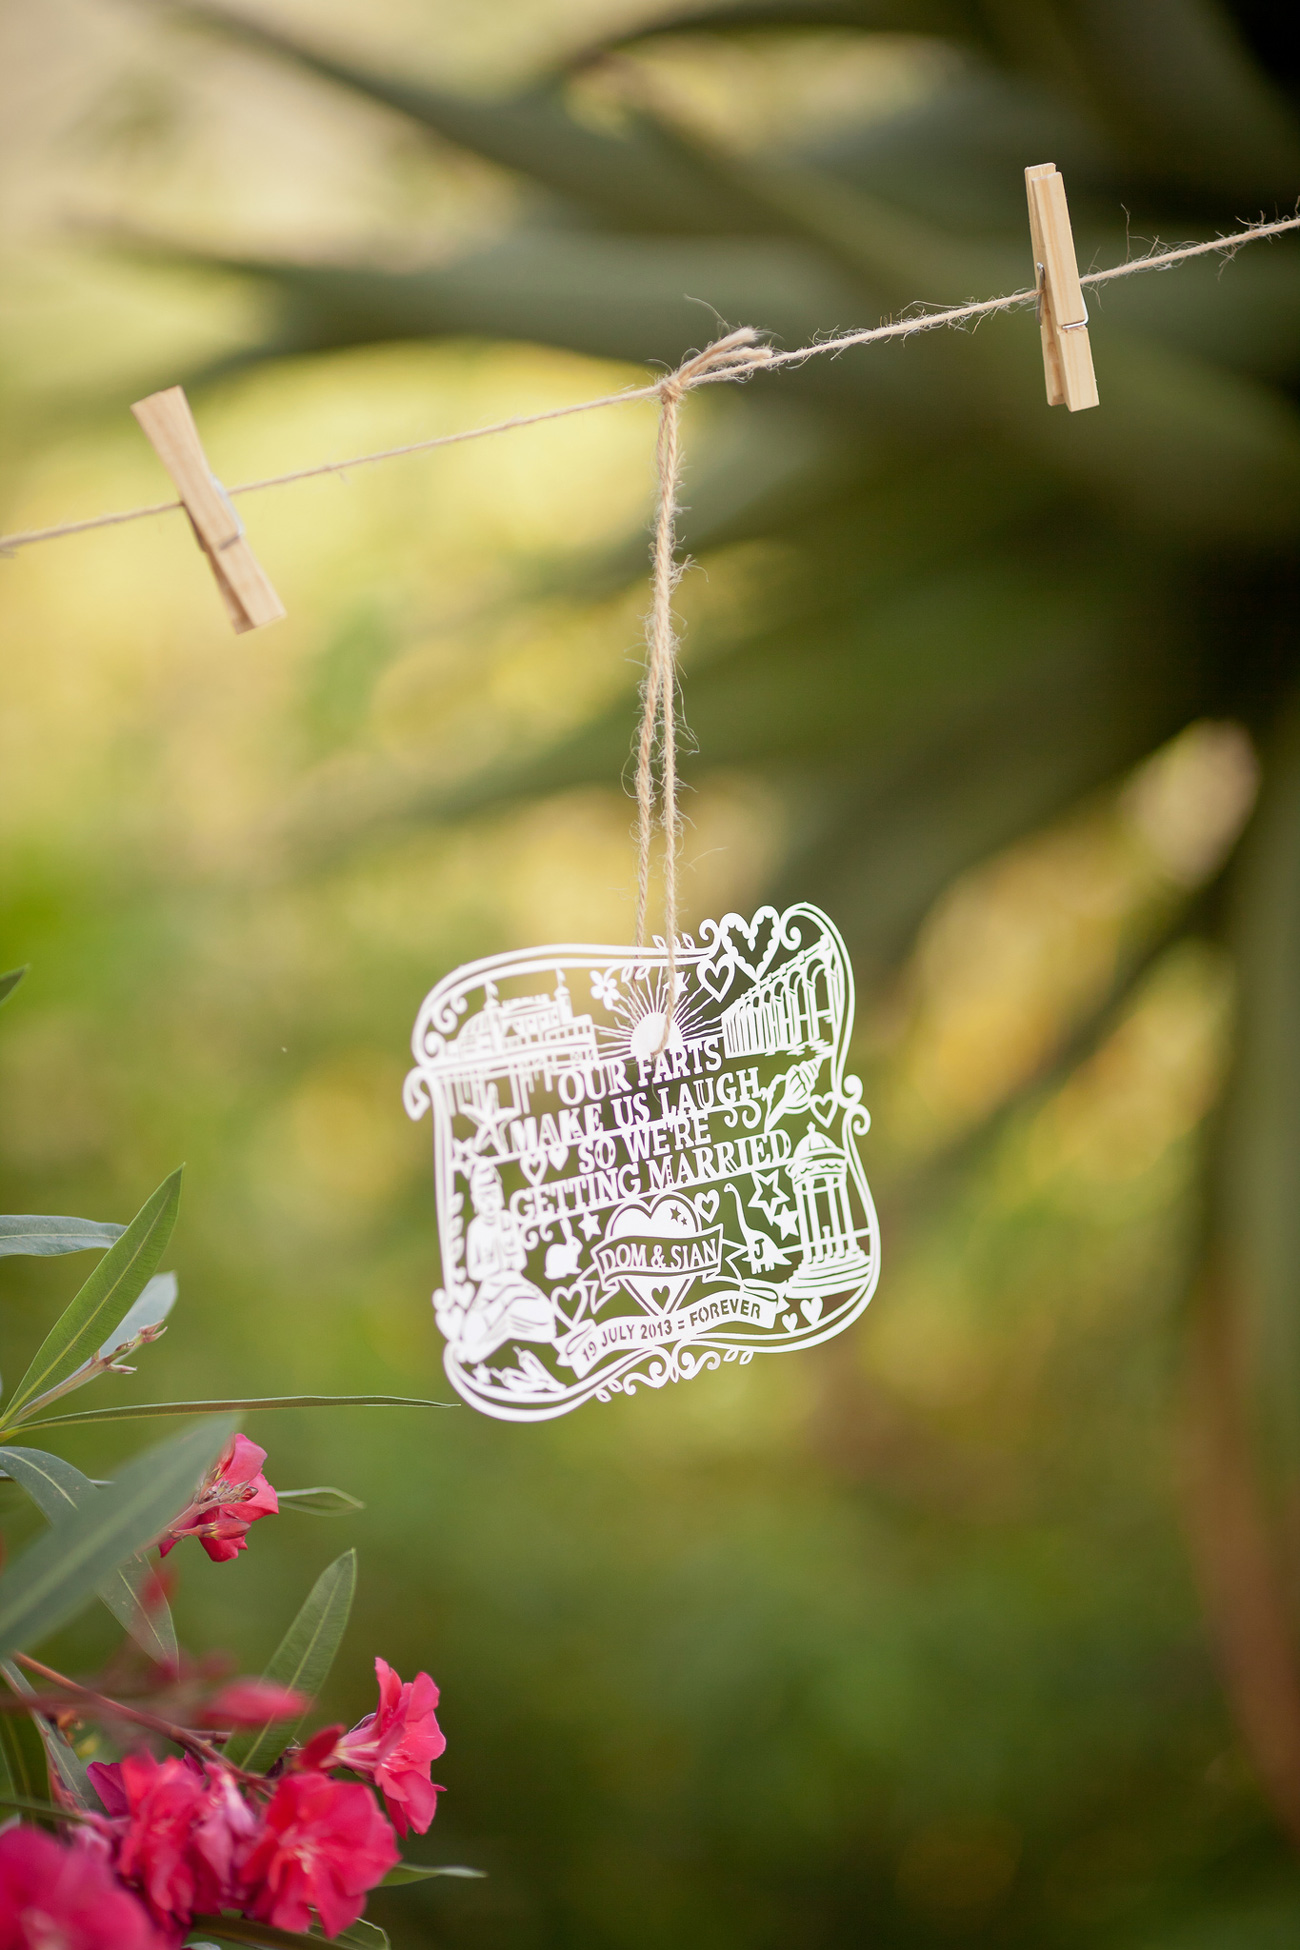 papercut wedding invitation in the garden with flowers